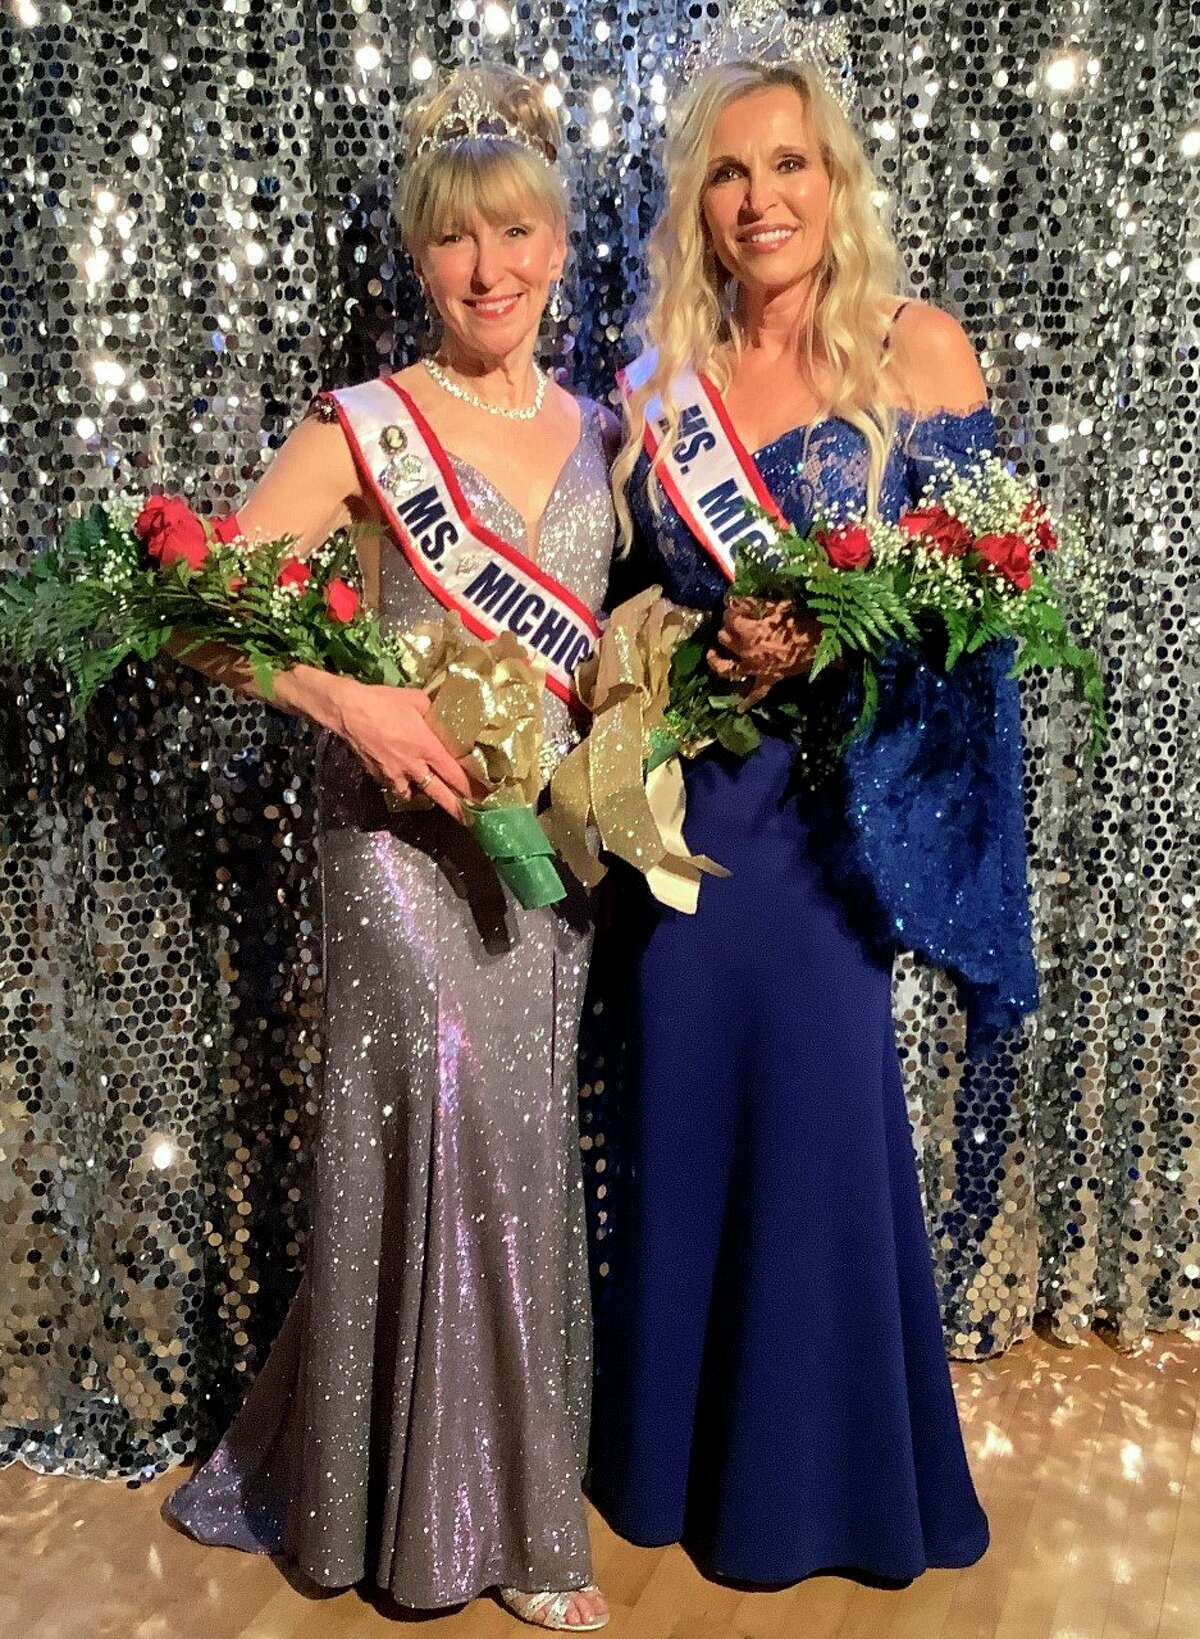 Ms. Senior Michigan 2021, Beth Grothe (right) poses with Ms. Senior Michigan 2019, Cathy Roe, following the announcement of the winner of the pageant. The contest was canceled in 2020 due to the COVID-19 pandemic. (Photo courtesy of Cathy Roe and Beth Grothe)